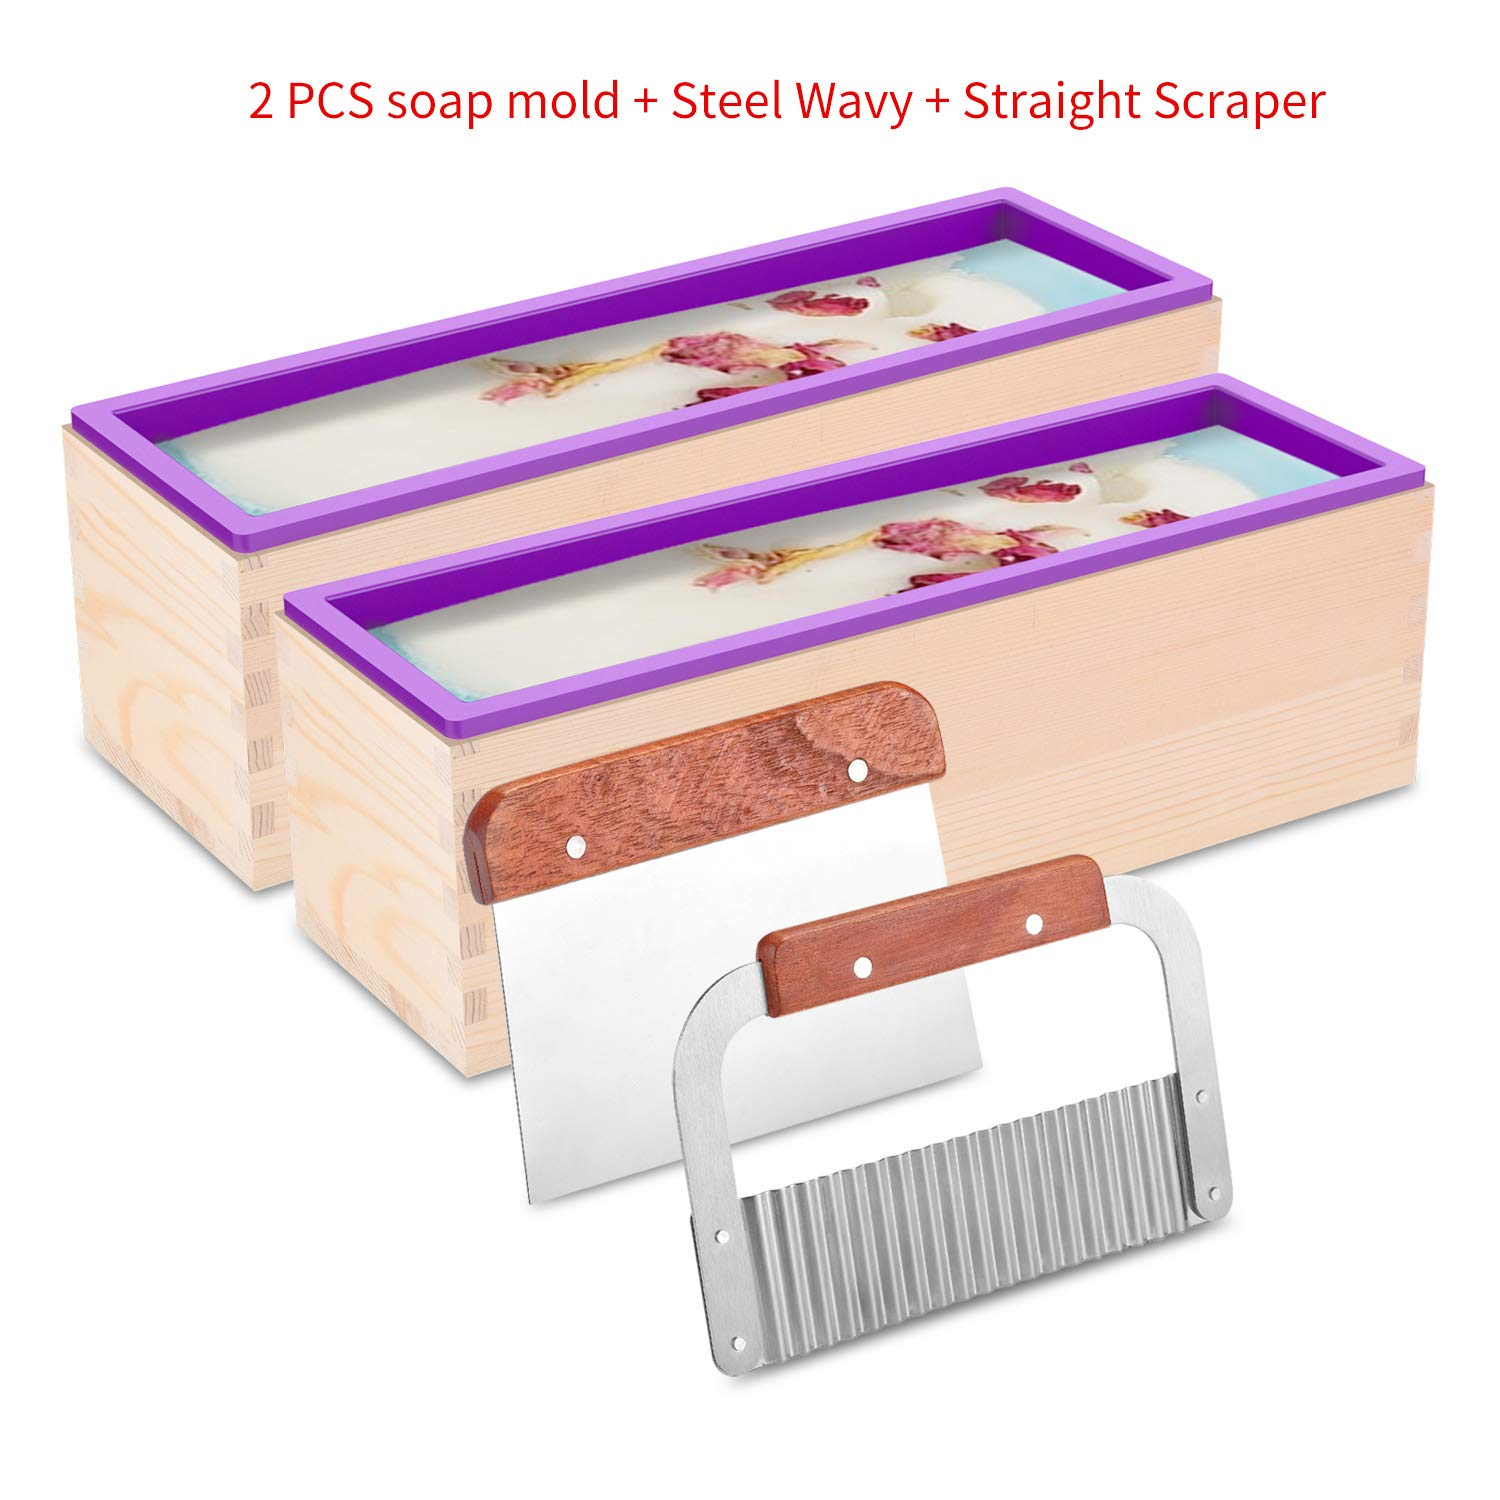 ZYTJ Silicone soap molds kit kit-2 PCS 42 oz Flexible Rectangular Loaf Comes with Wood Box,1 PCS Stainless Steel Wavy & 1 PCS Straight Scraper for CP and MP Making Supplies